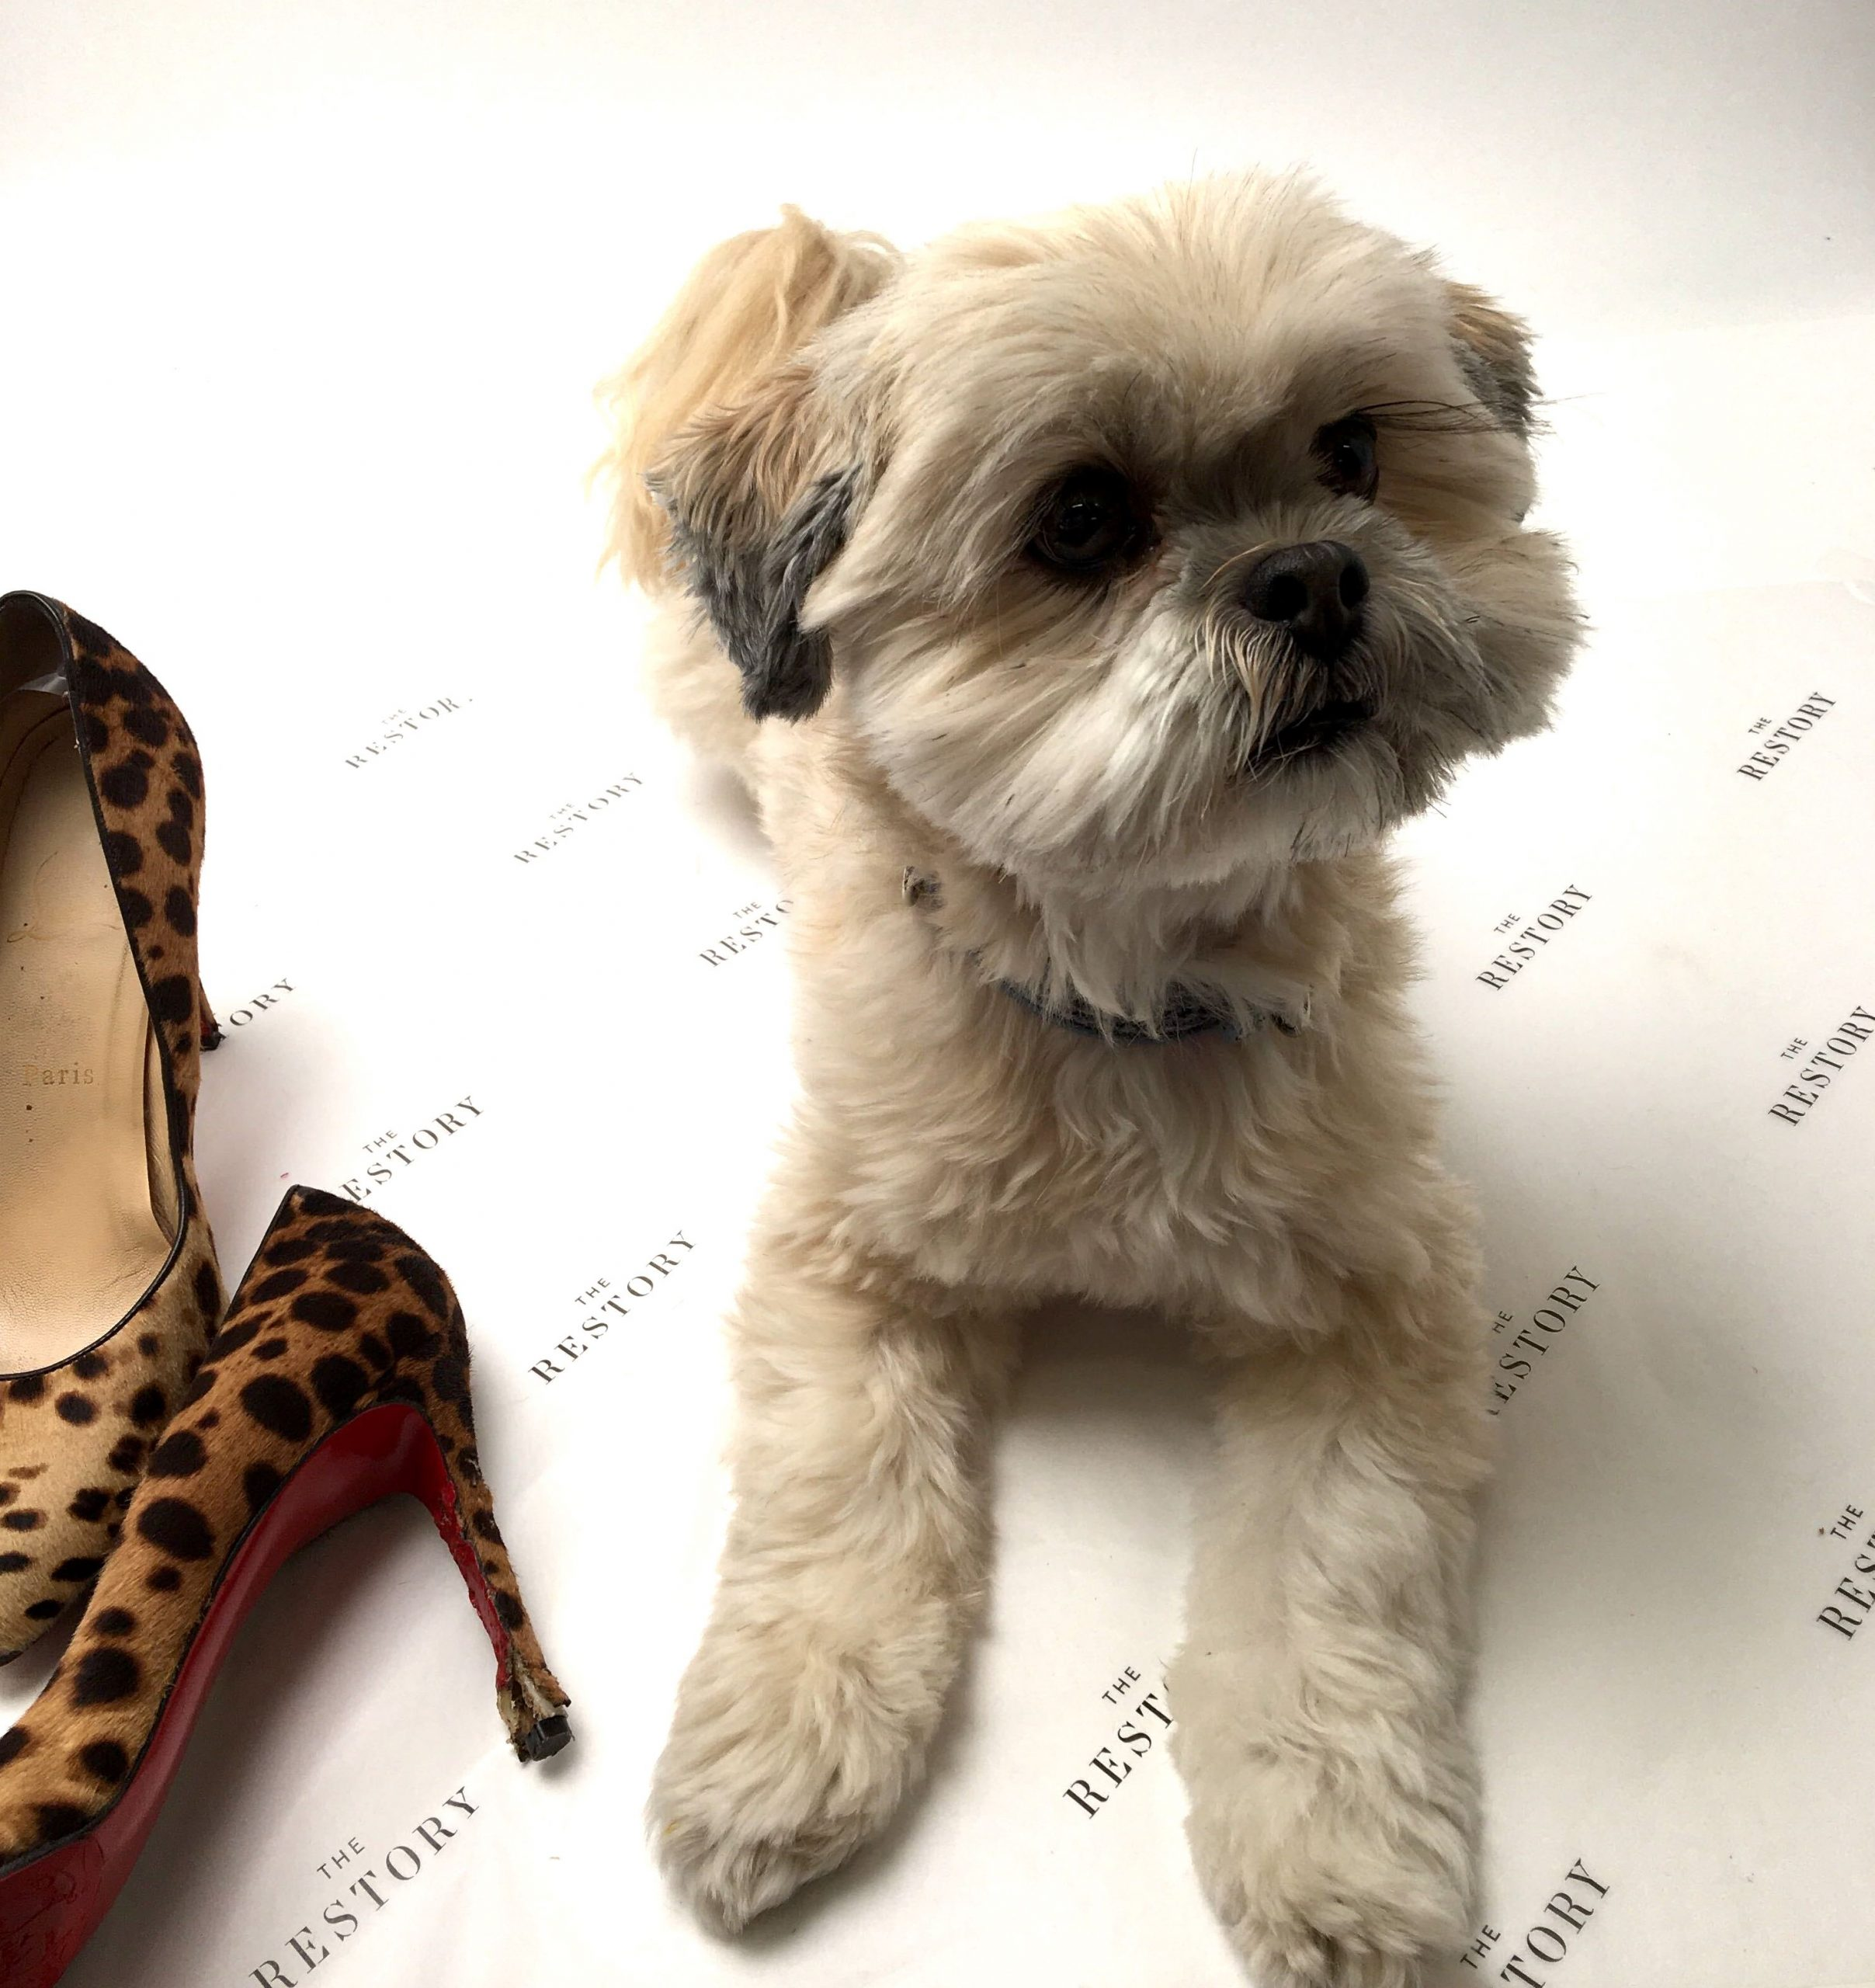 Puppy chewed shoes